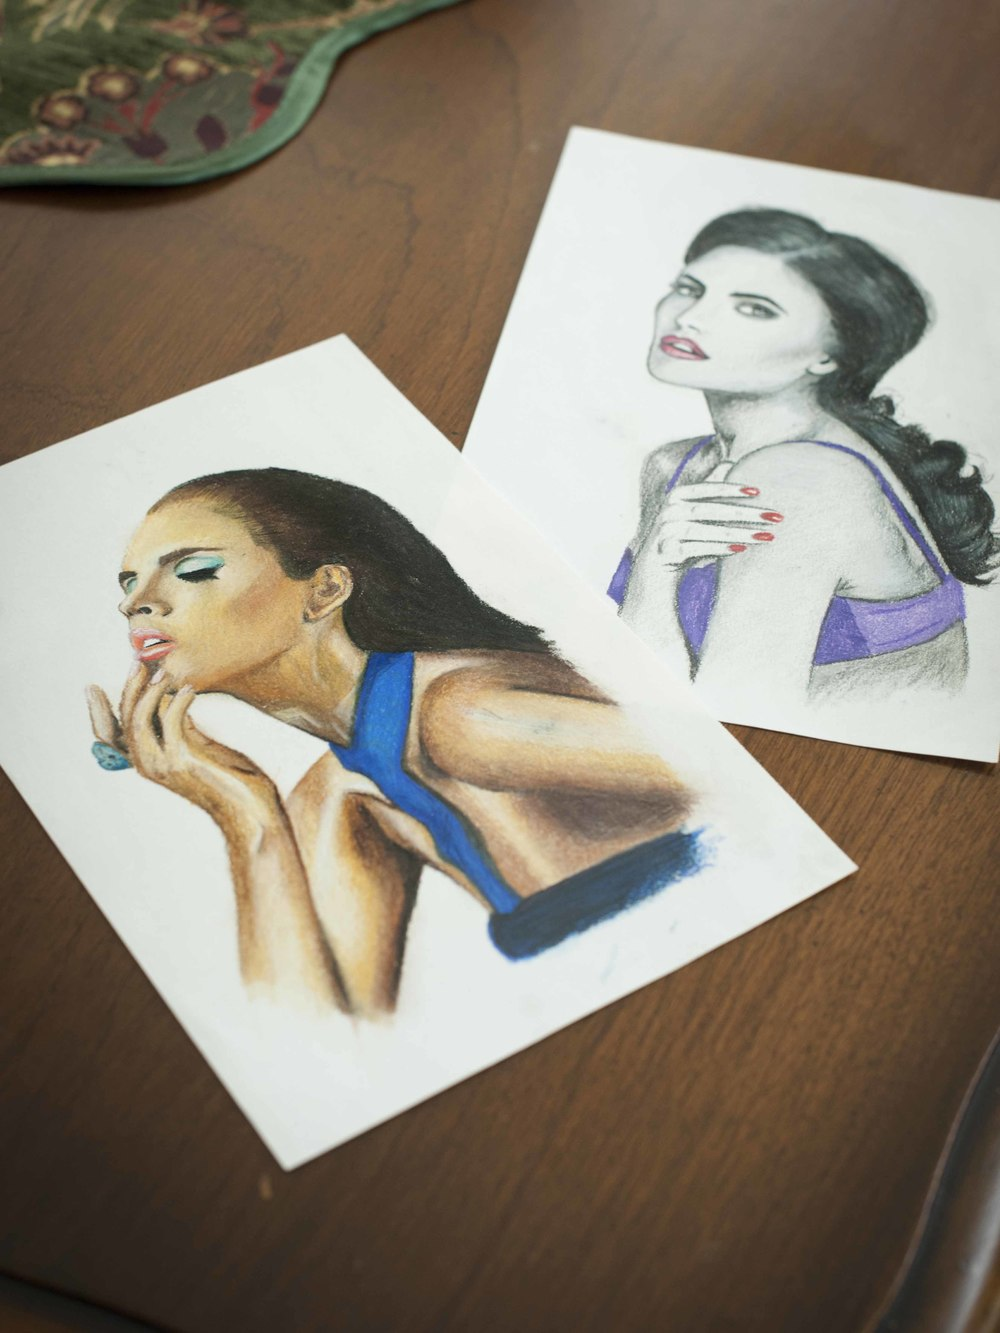 My first colored pencil drawings.